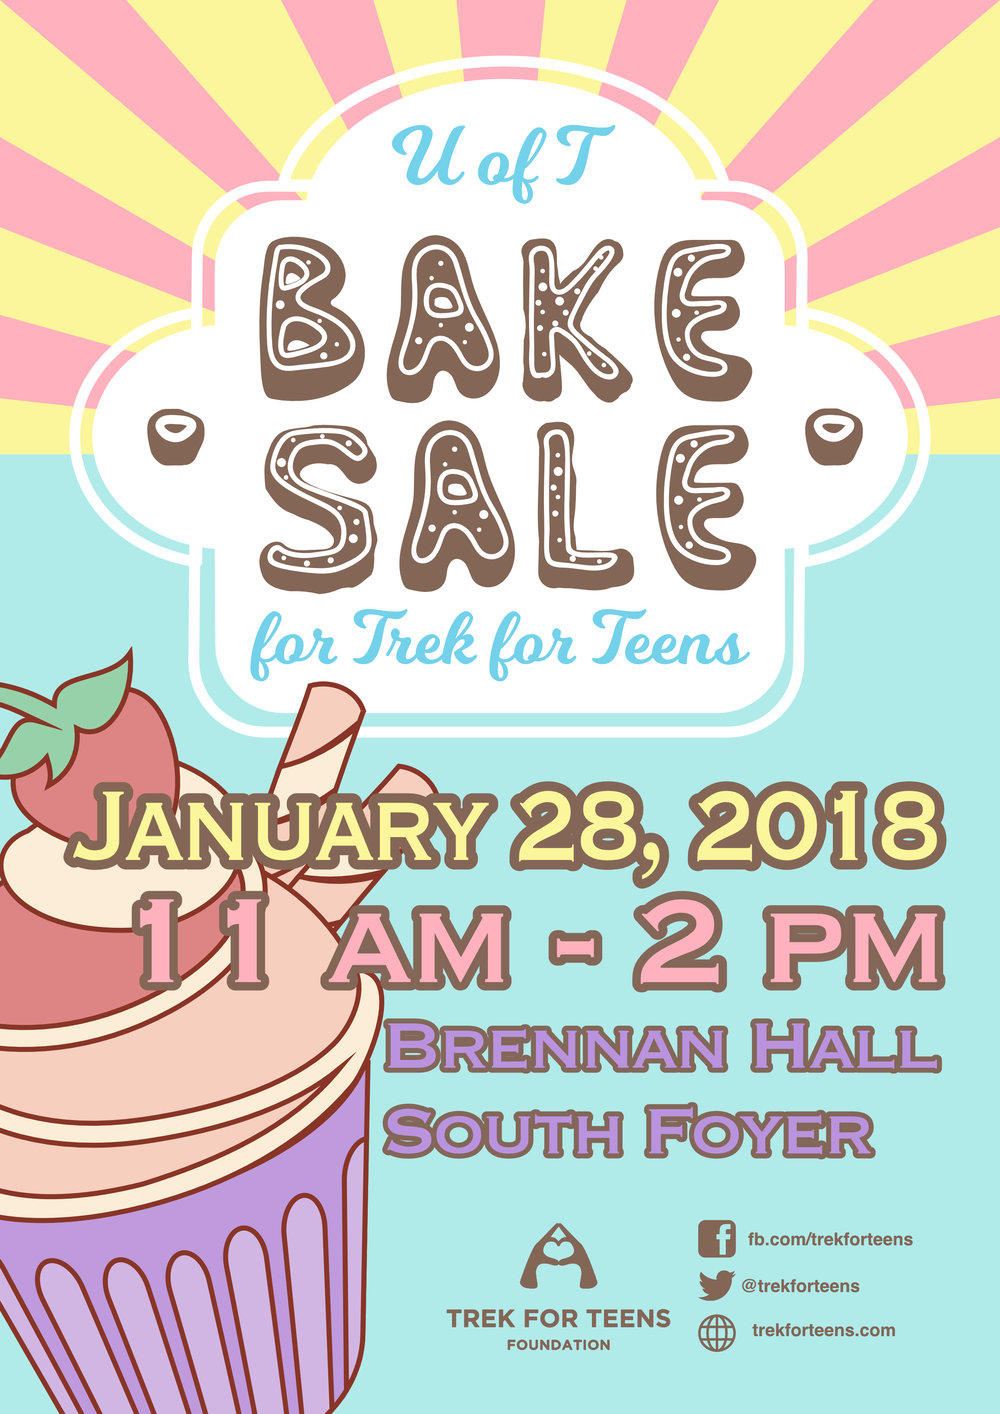 bake sale new.jpg